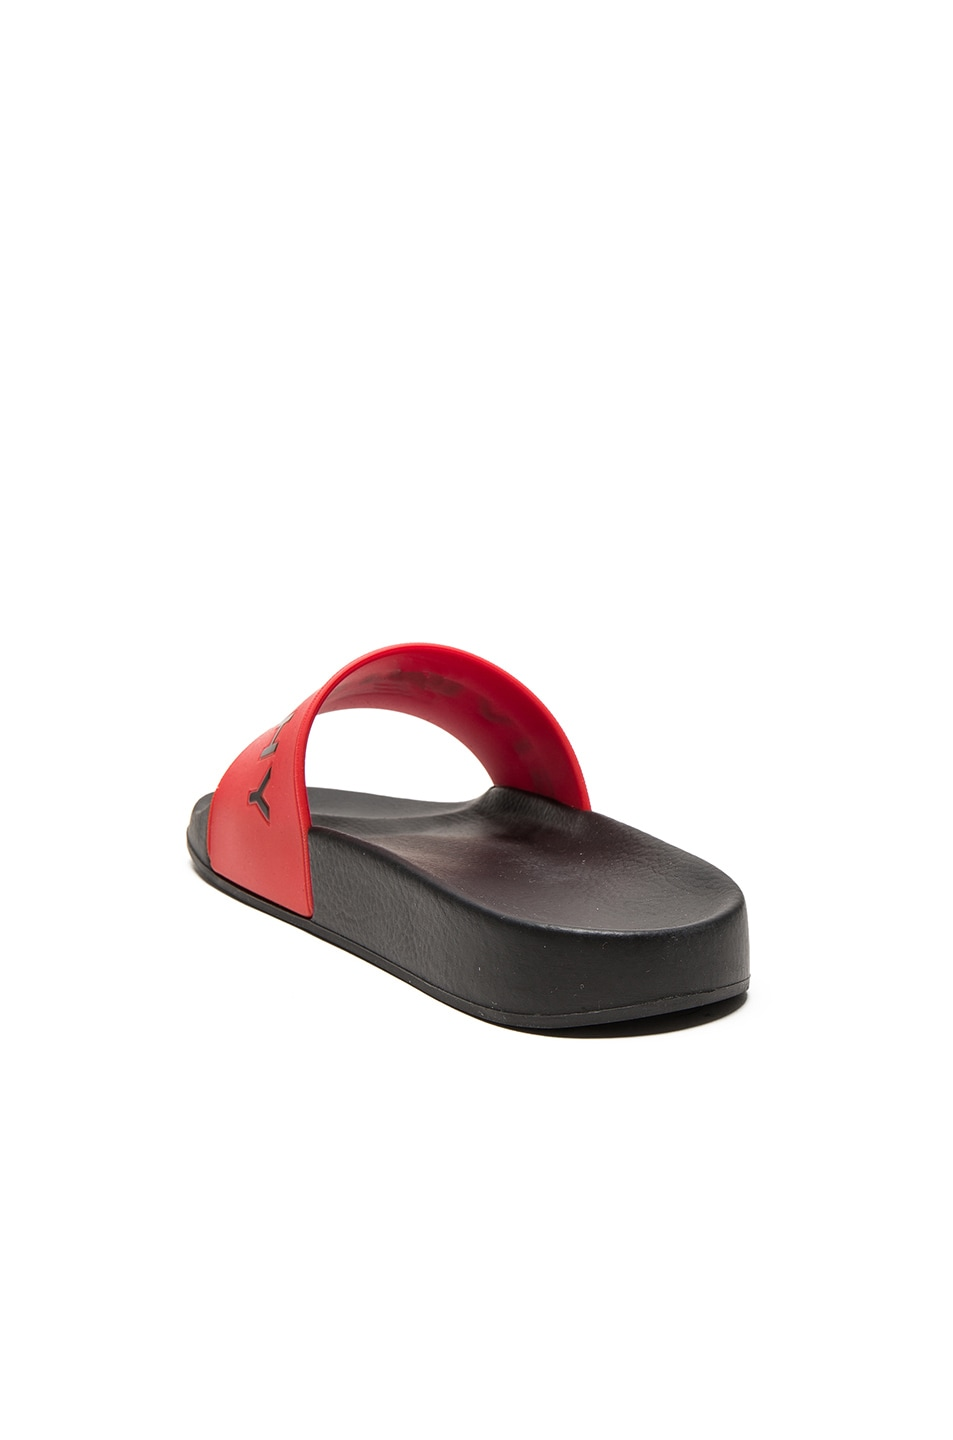 Image 4 of Givenchy Printed Rubber Slide Sandals in Red